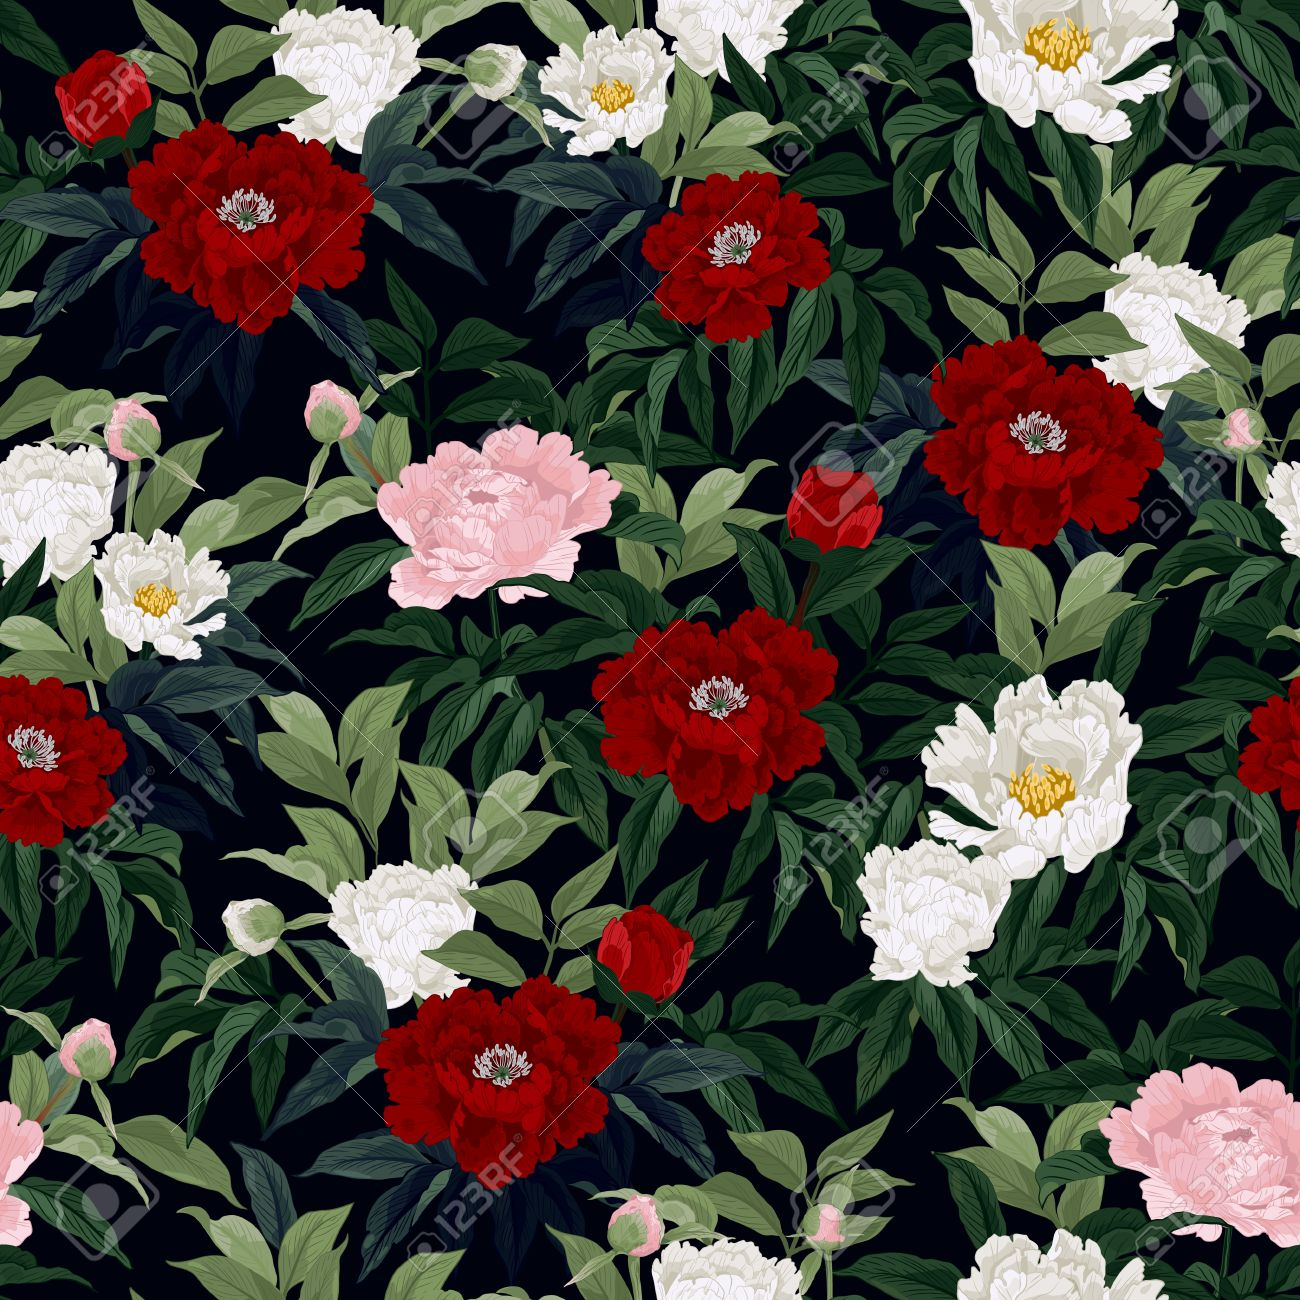 Seamless Floral Pattern With Red Pink And White Roses On Black